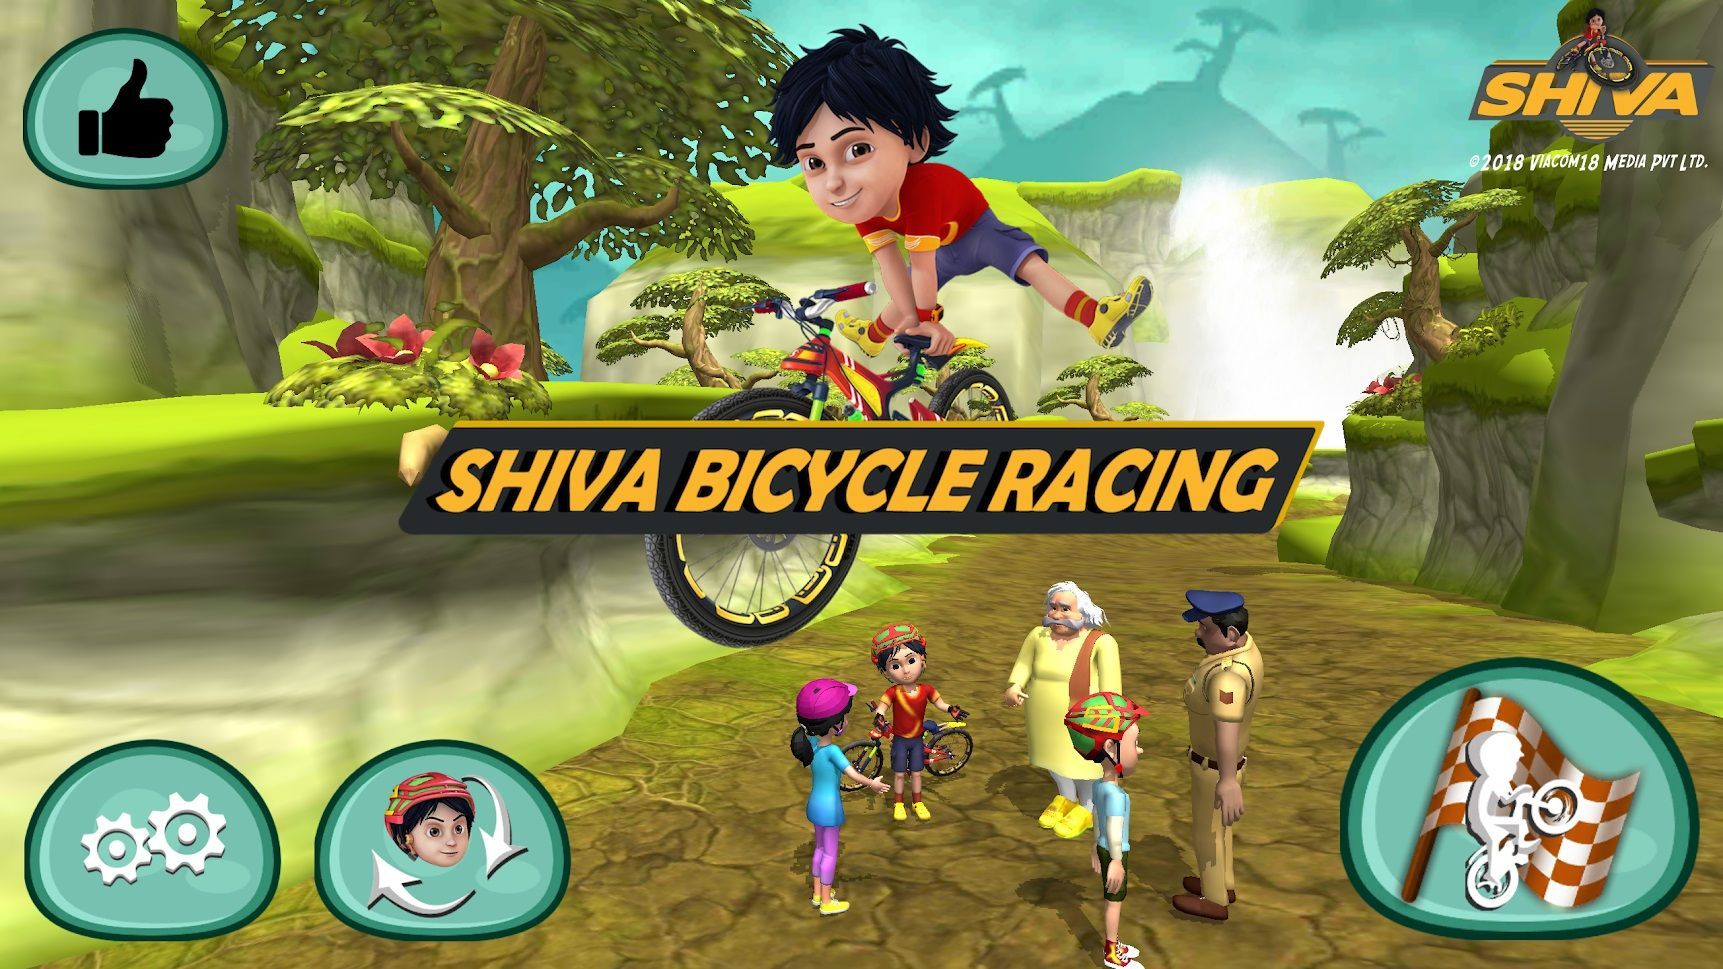 Shiva Bicycle Racing